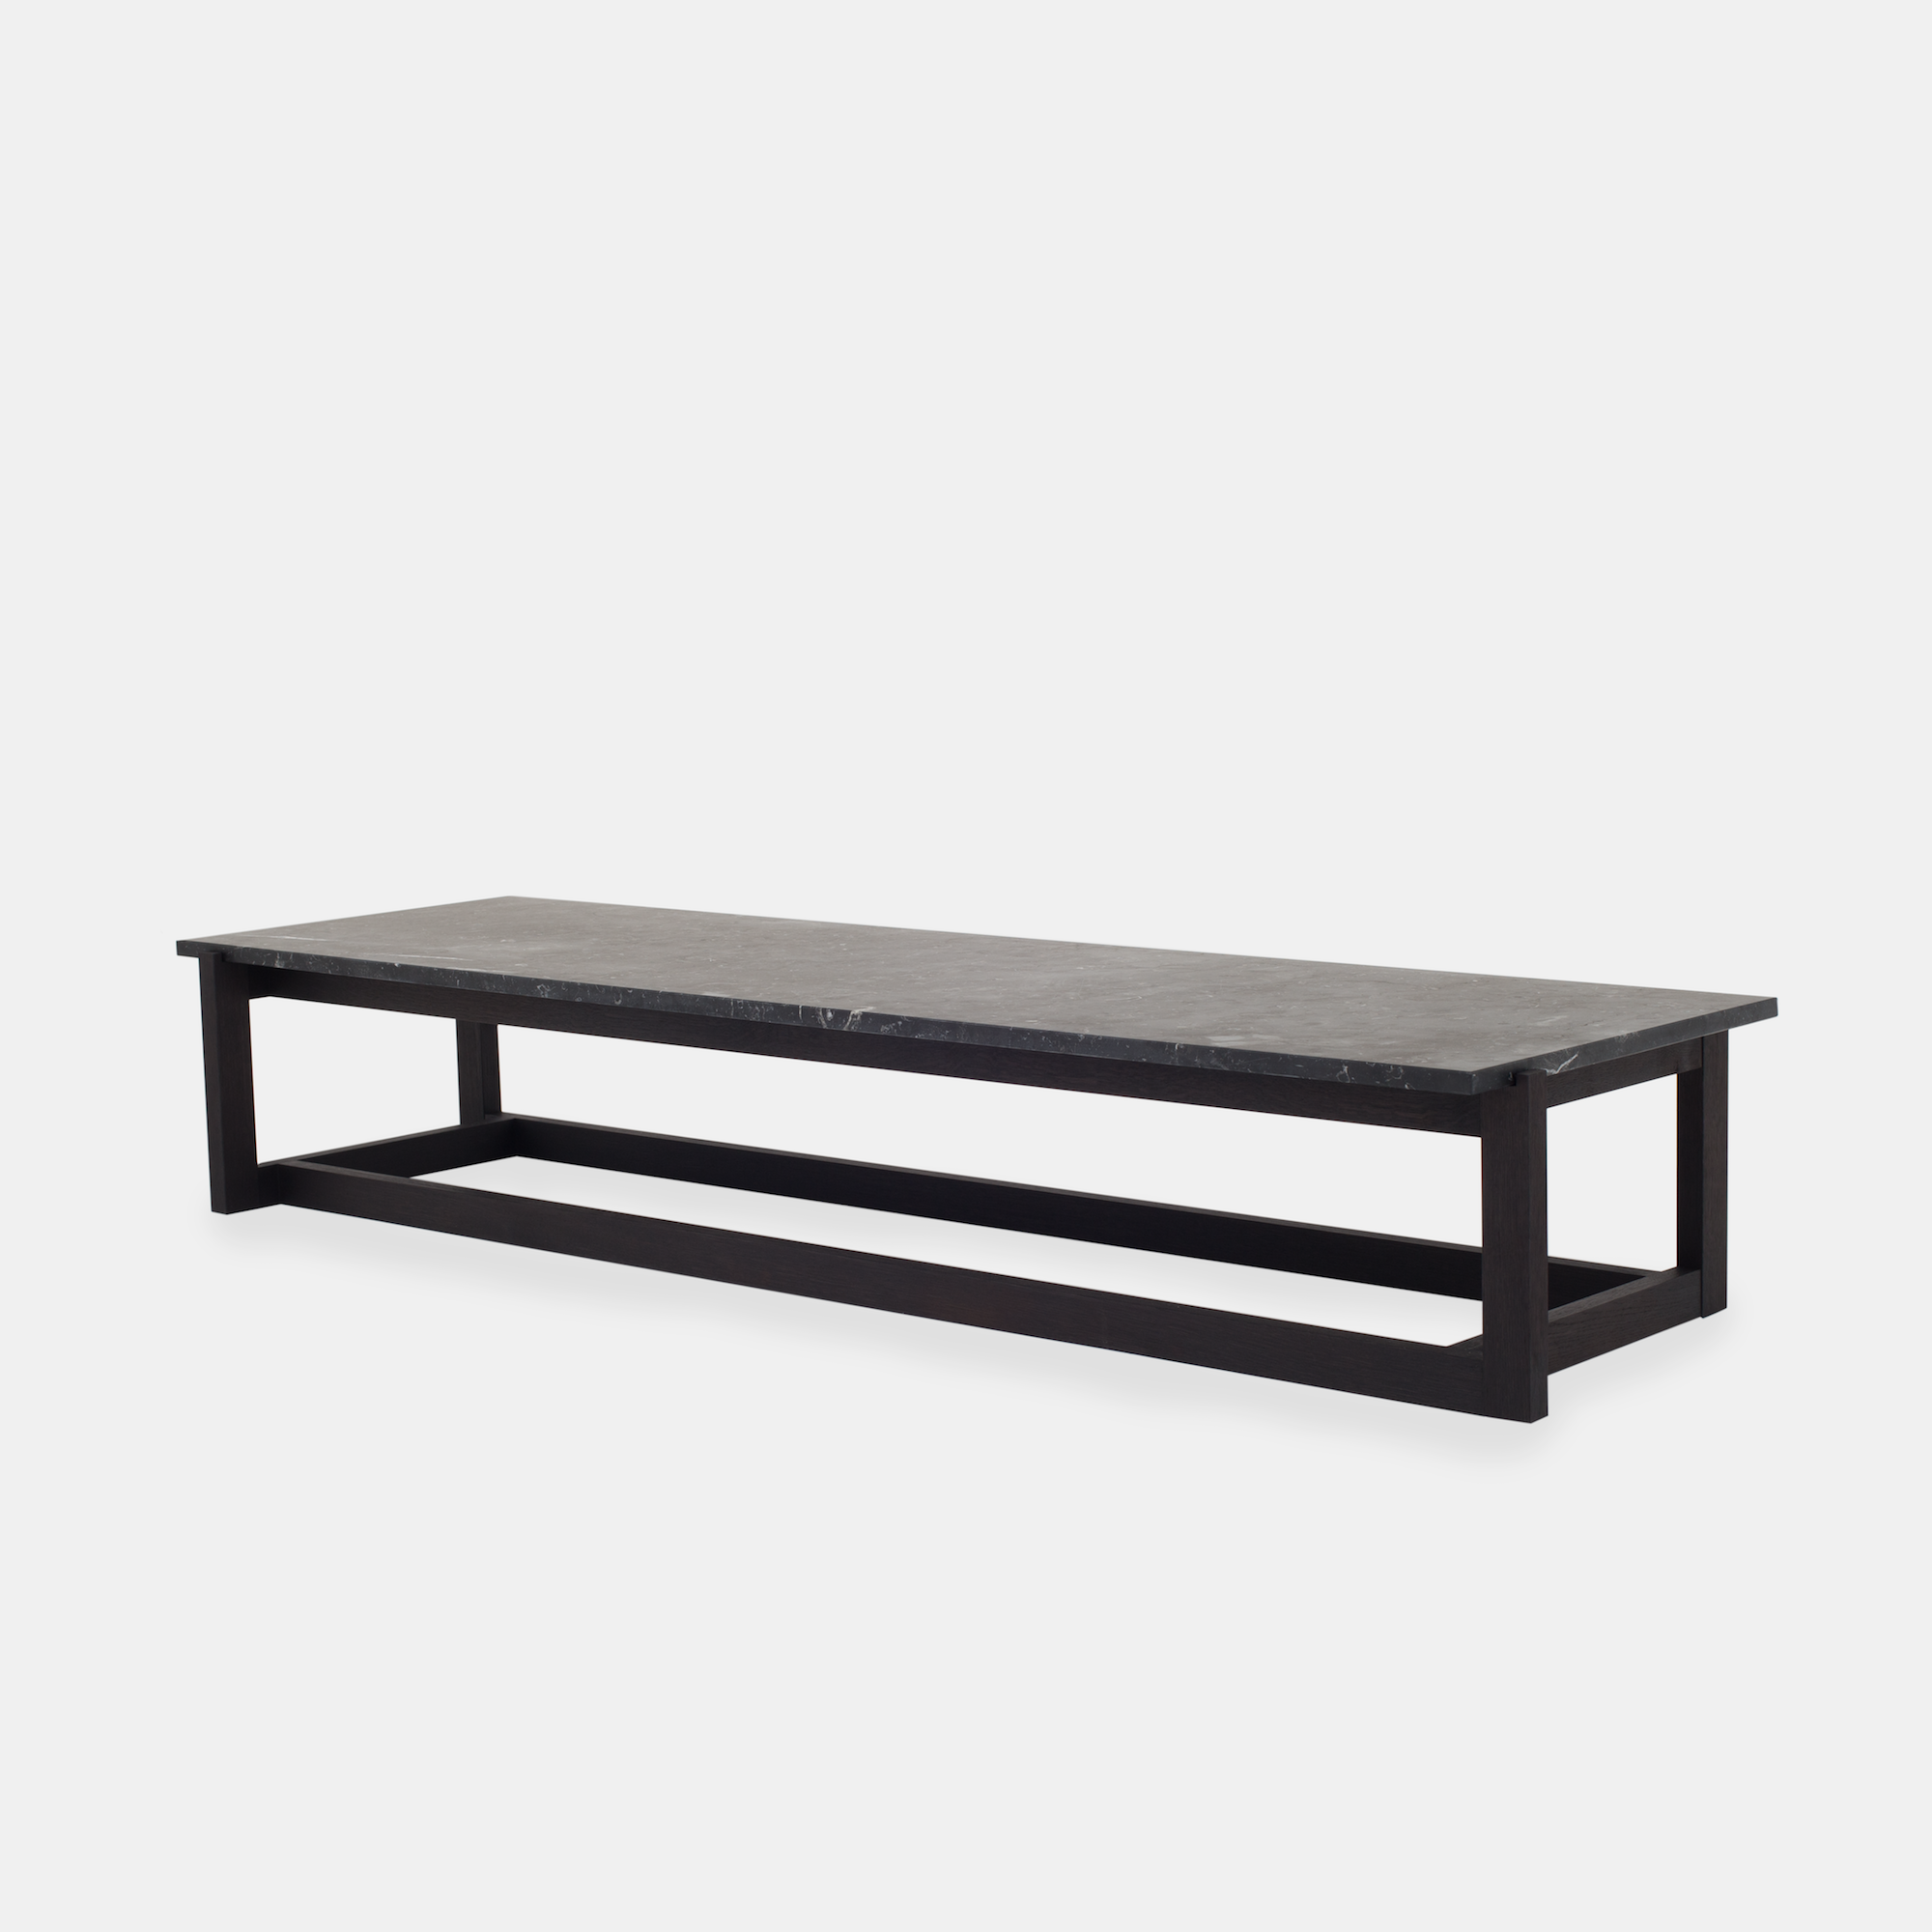 Klassik Studio Coffee Table - Black/Black Marble